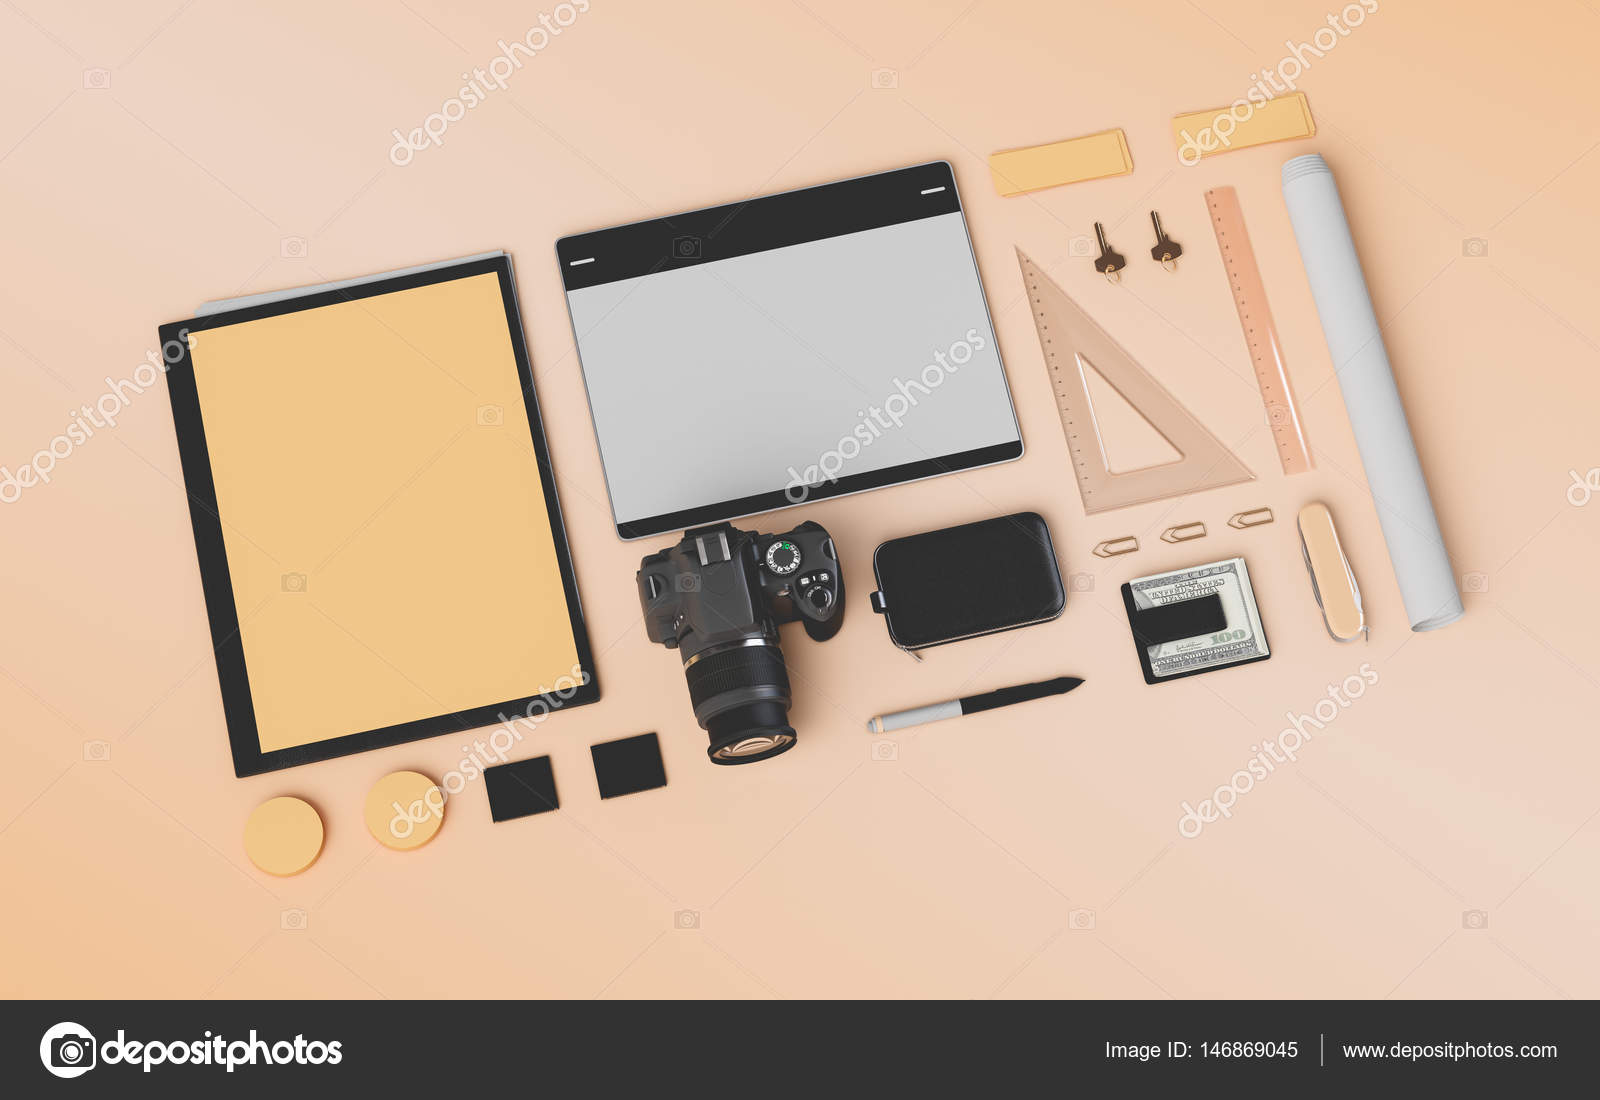 supplies illustration branding high shutterstock office image gadgets stock quality photo mock d up